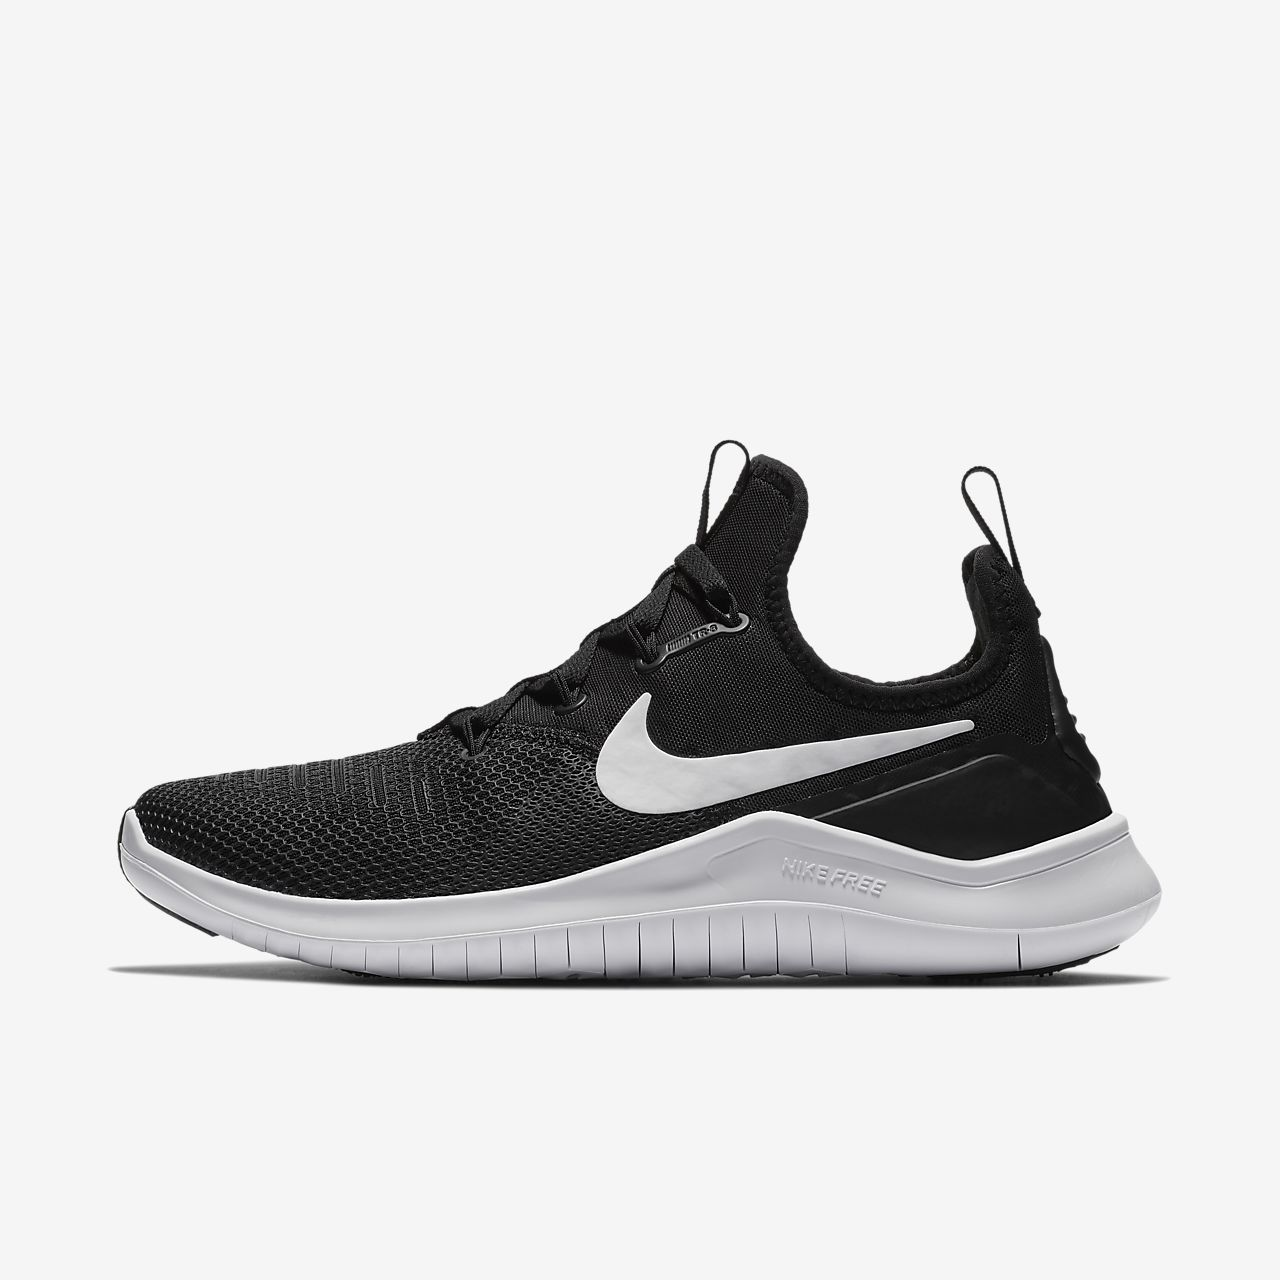 6d6d3c51ebc Nike Free TR8 Women s Gym HIIT Cross Training Shoe. Nike.com GB